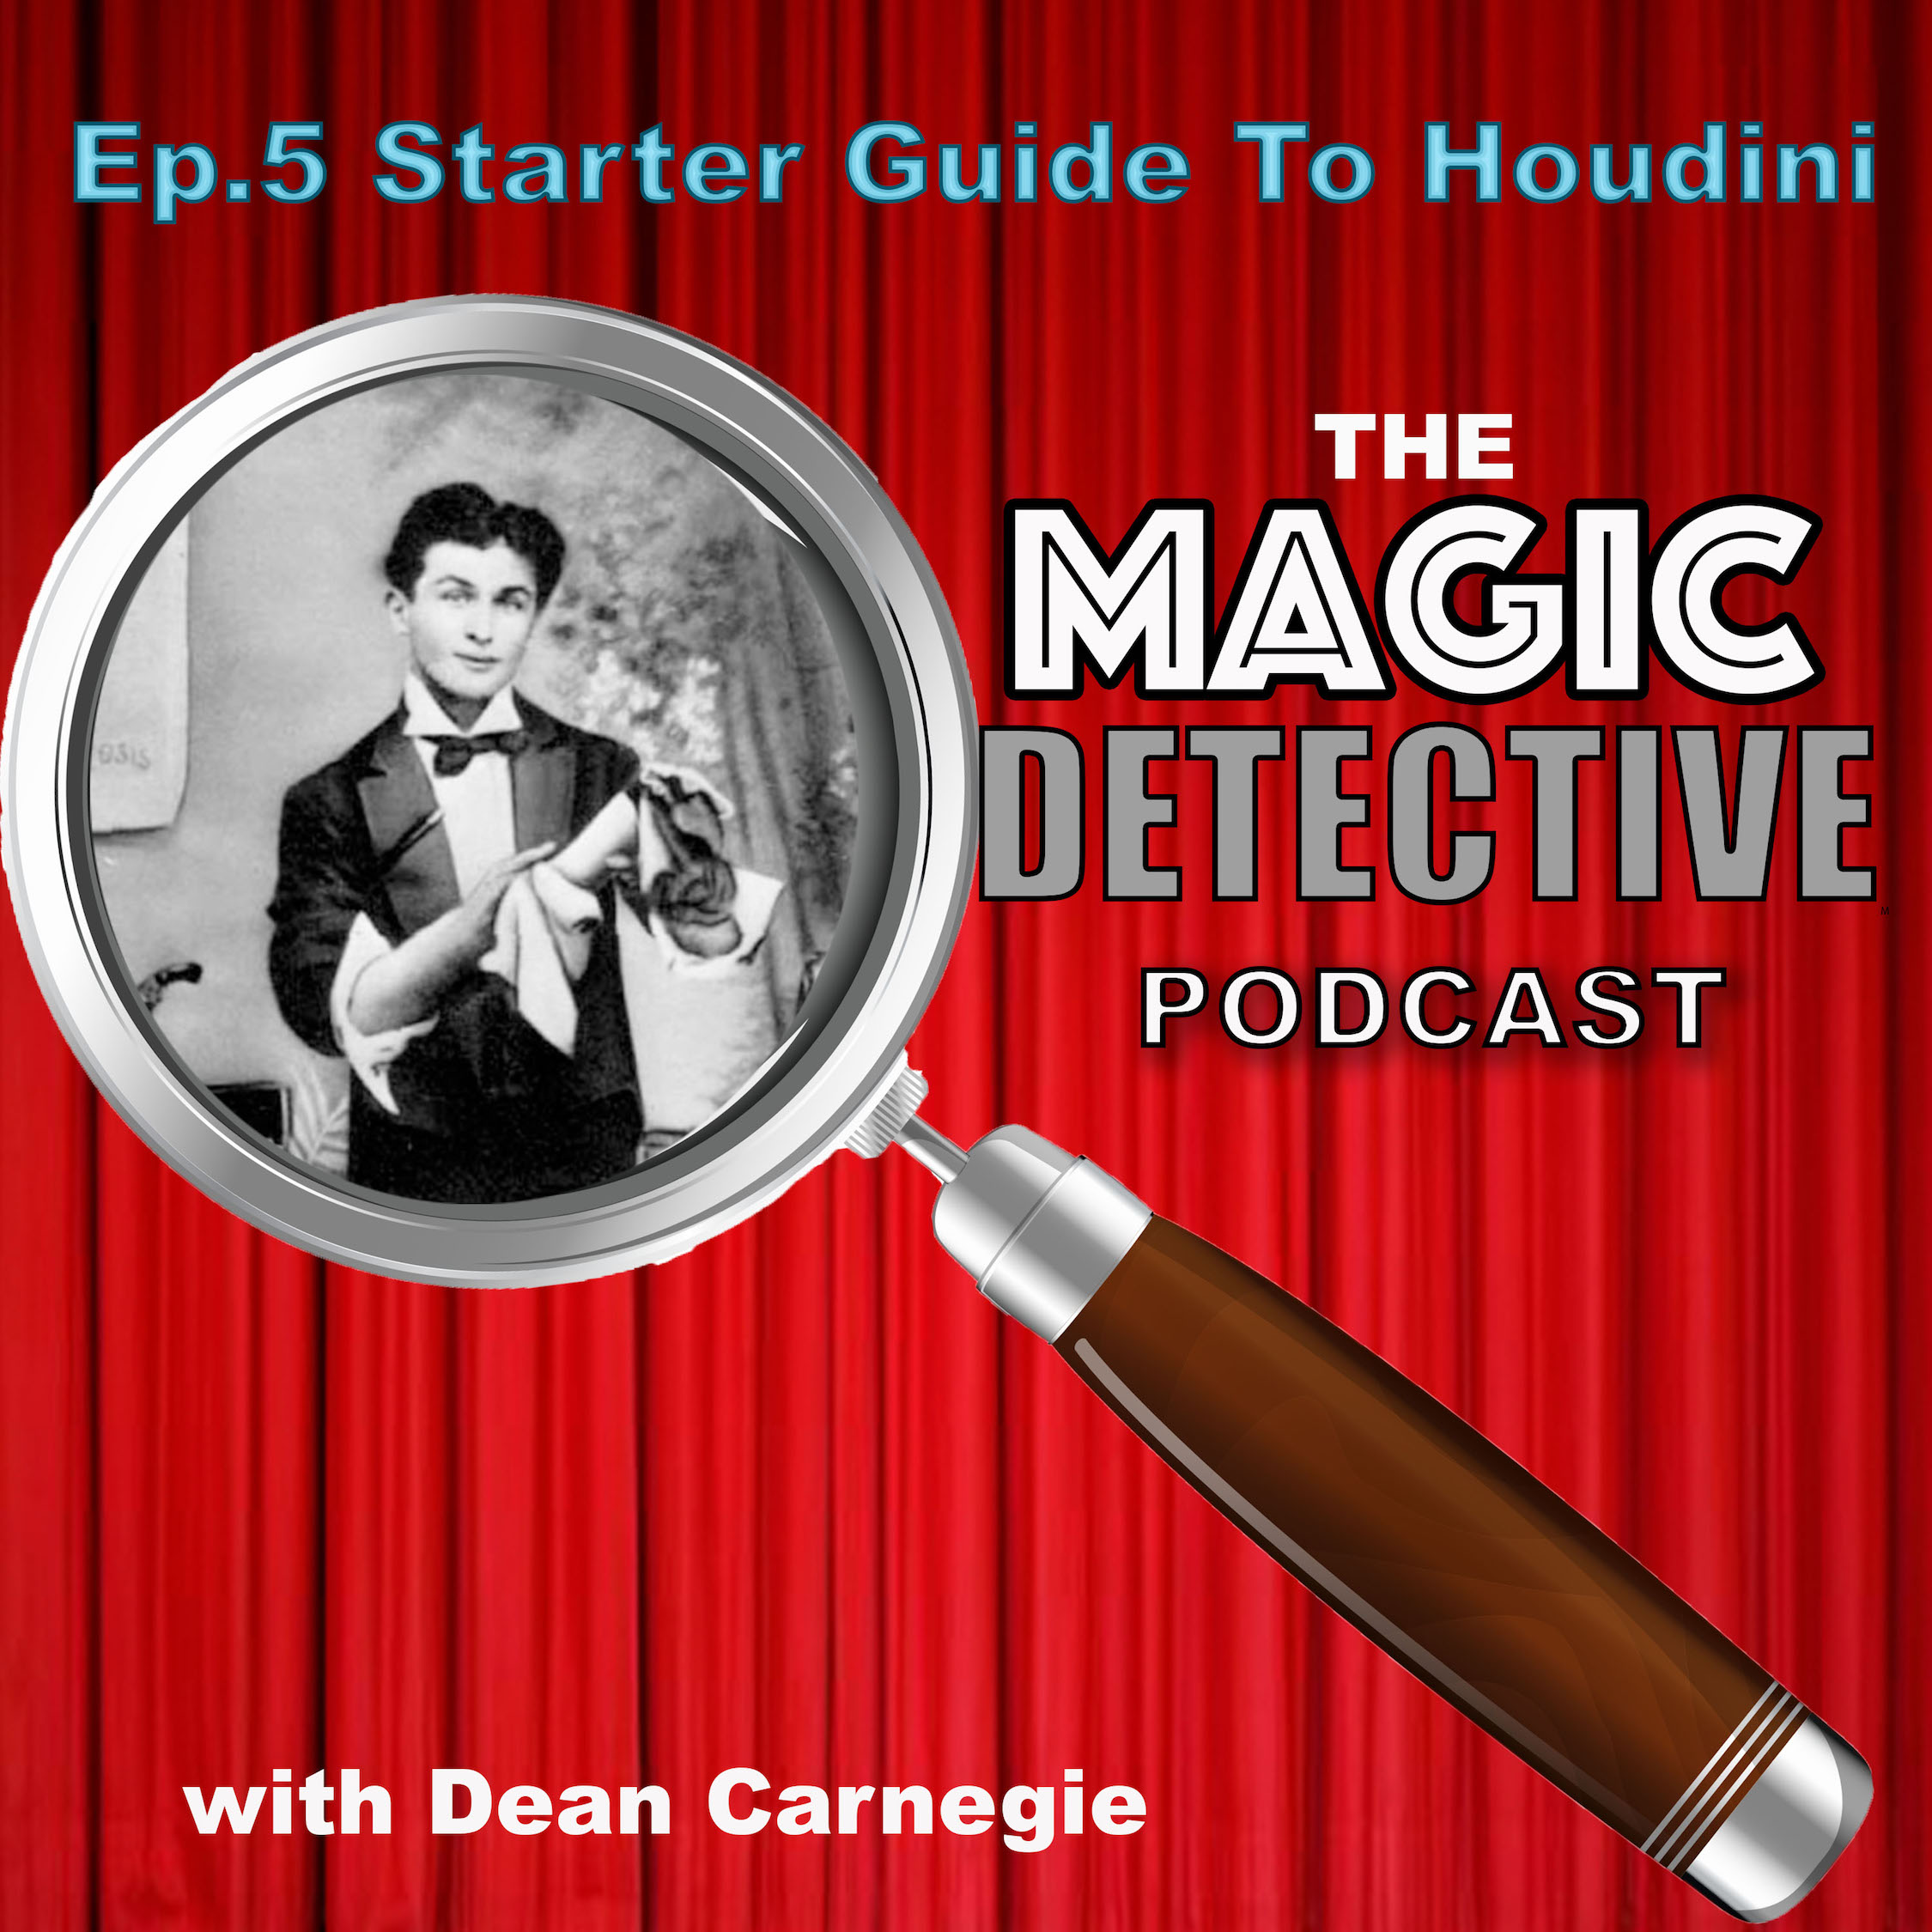 Magic Detective Podcast Ep 5 -Starter Guide To Houdini